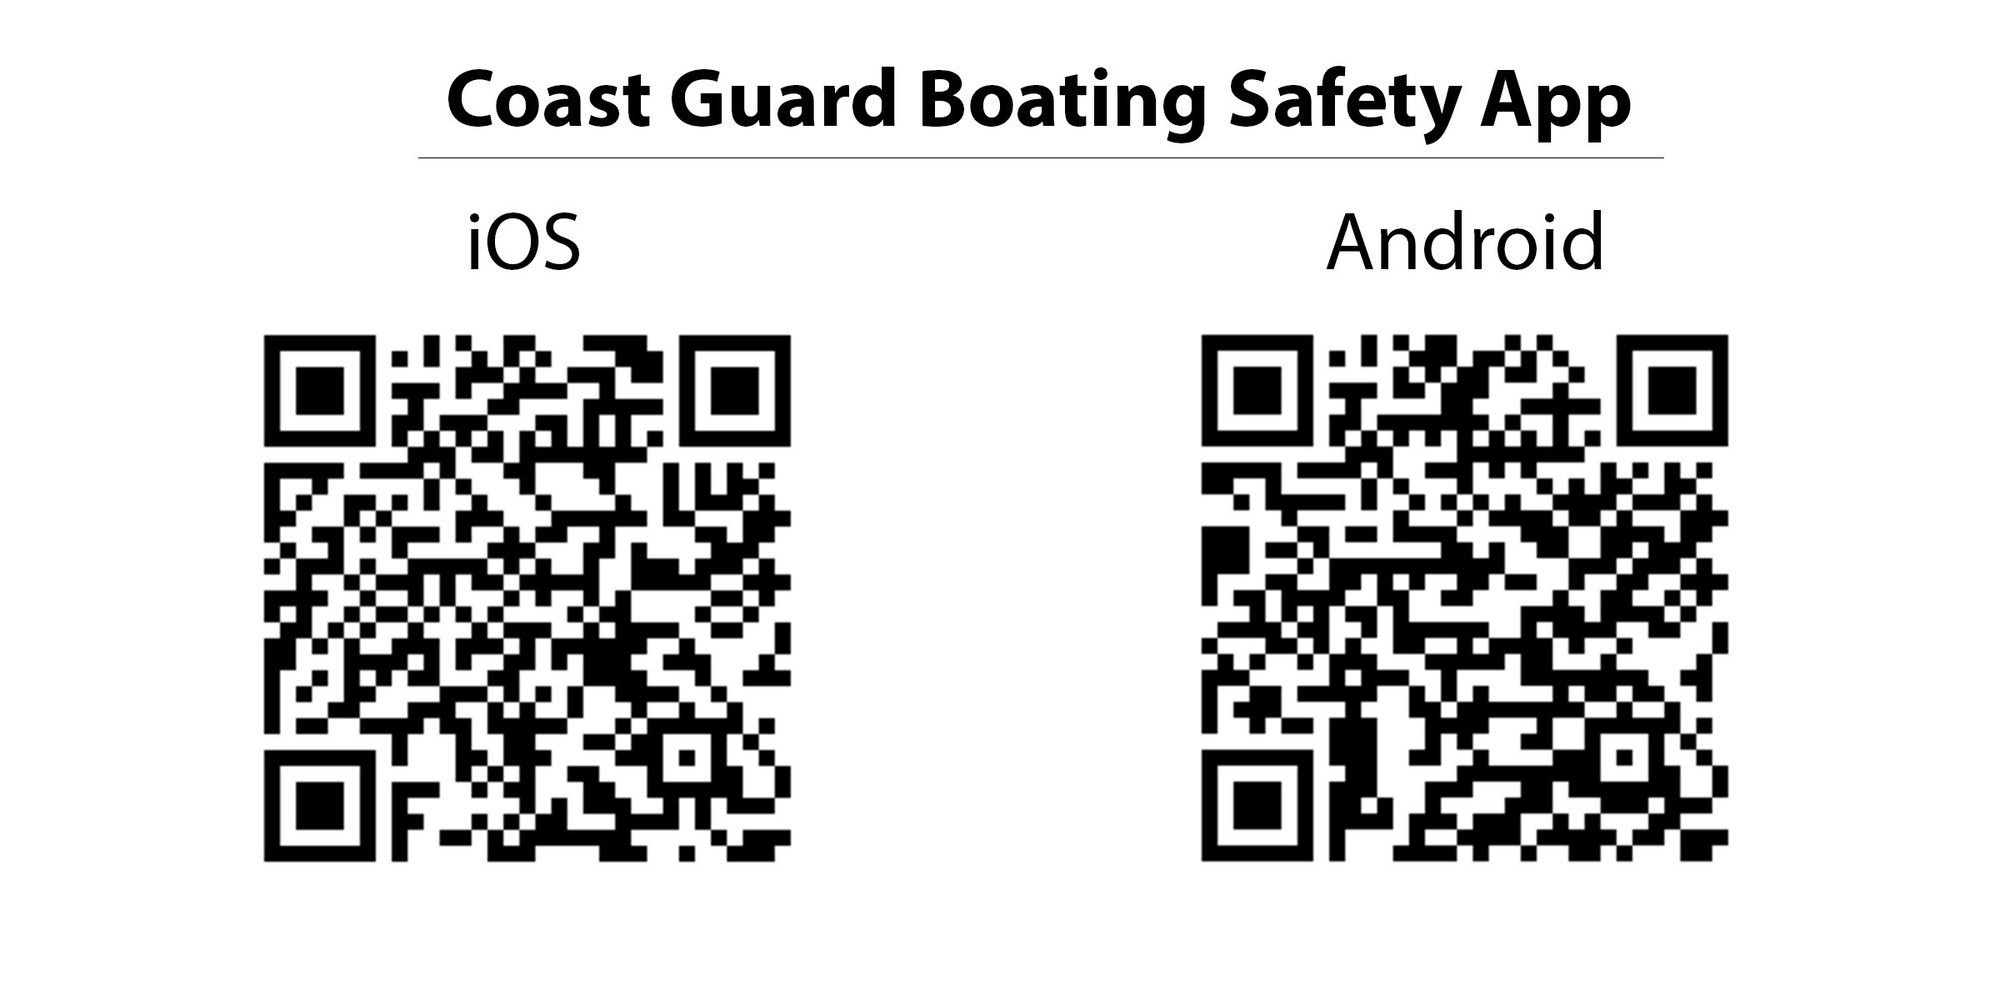 Boating safety app